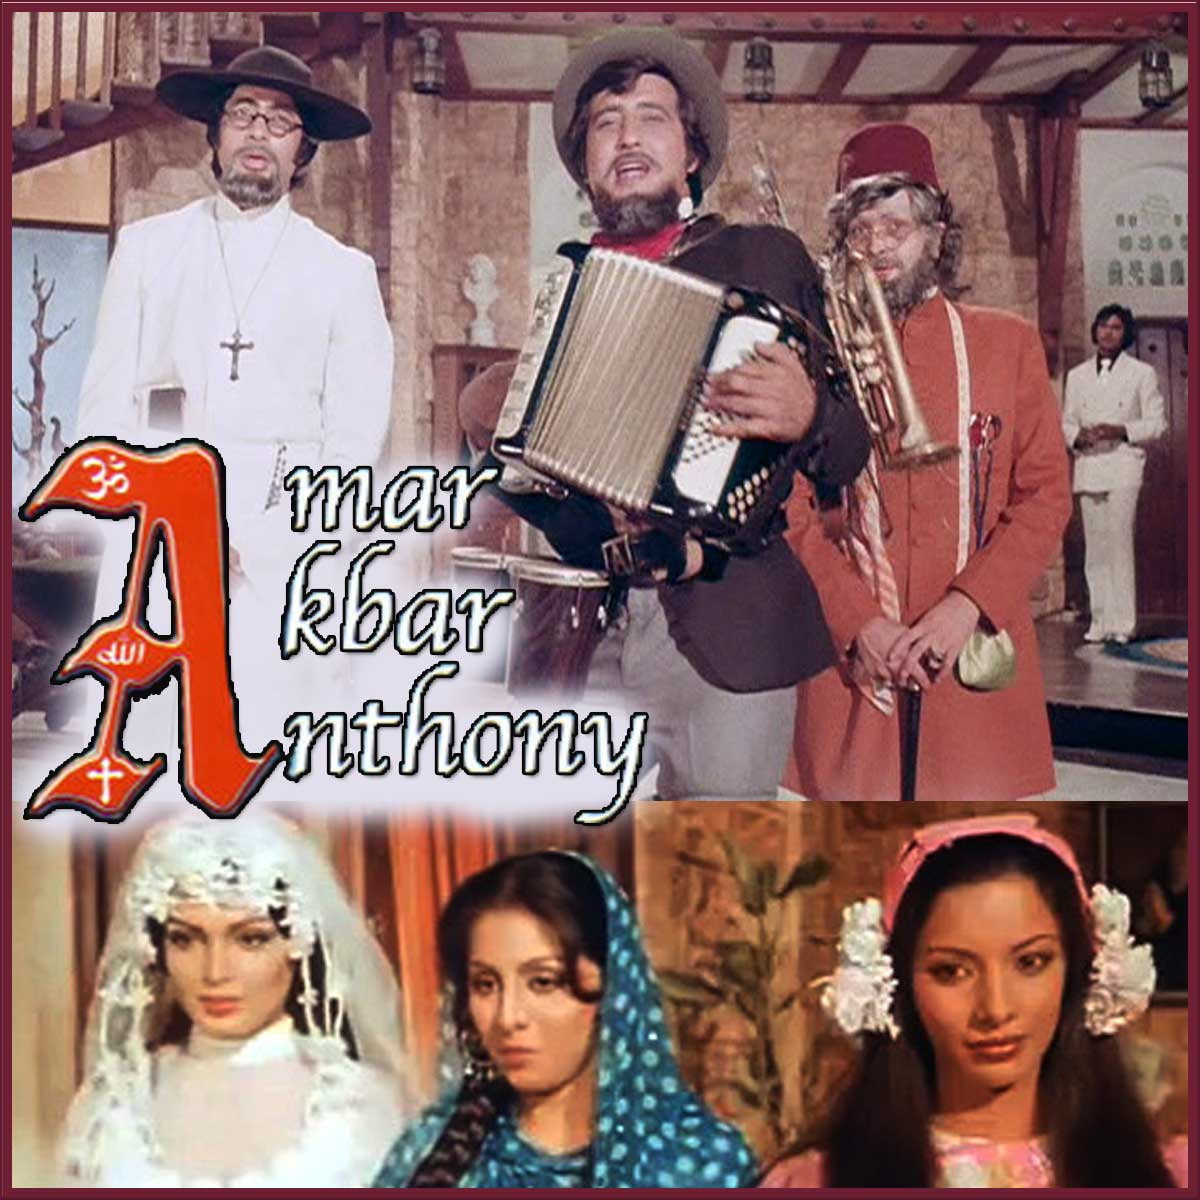 Amar akbar anthony remix mp3 download nude movie of of asian woman.